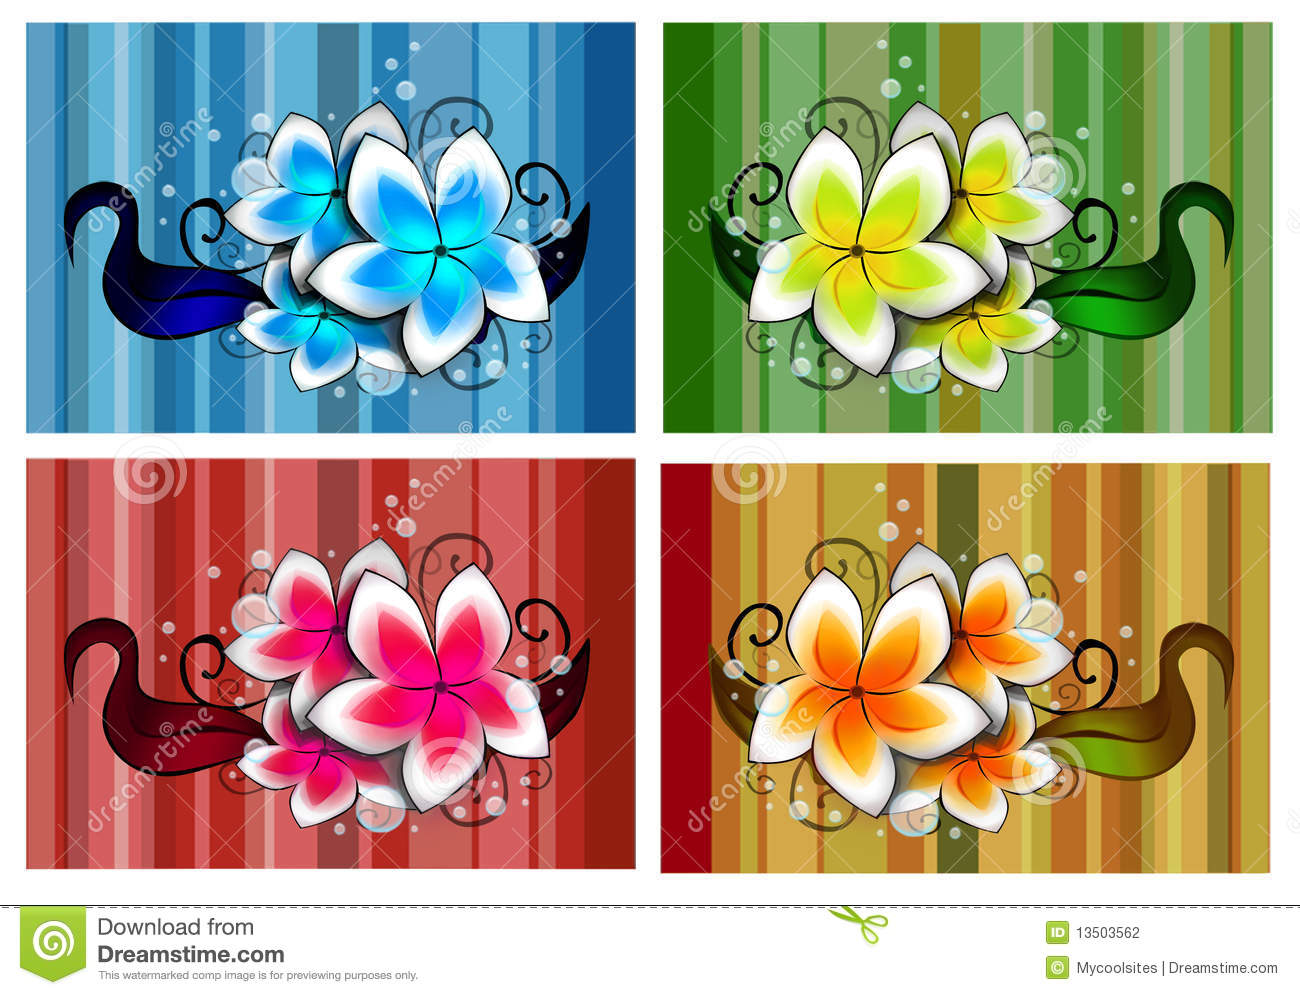 Flowers design in different colors stock illustration for What makes flowers different colors